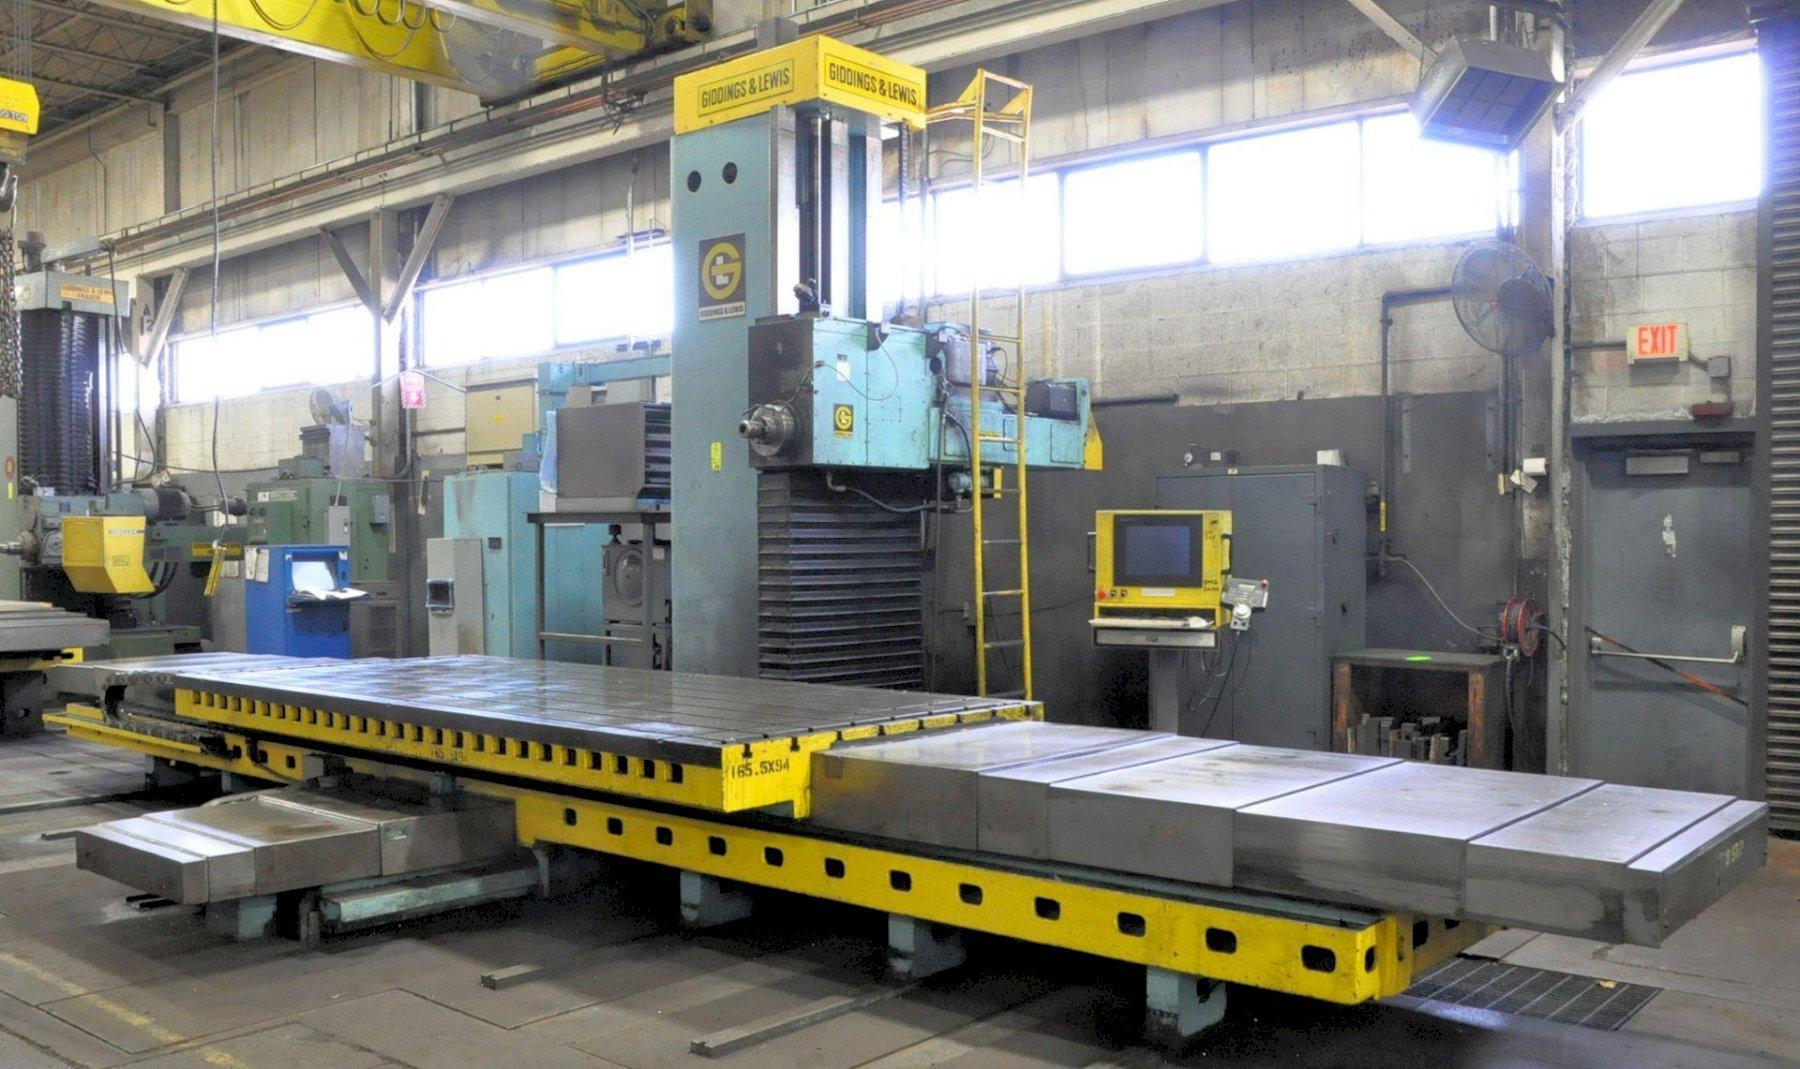 "6"" Giddings & Lewis Model G60F, Table Type Horizontal Boring Mill, 170"" X 72"" T-Slotted Table Size, 165"" X-Axis, 94"" Y-Axis 33.25"" Z-Axis, 44.75"" W-Axis, Chip Conveyor,"